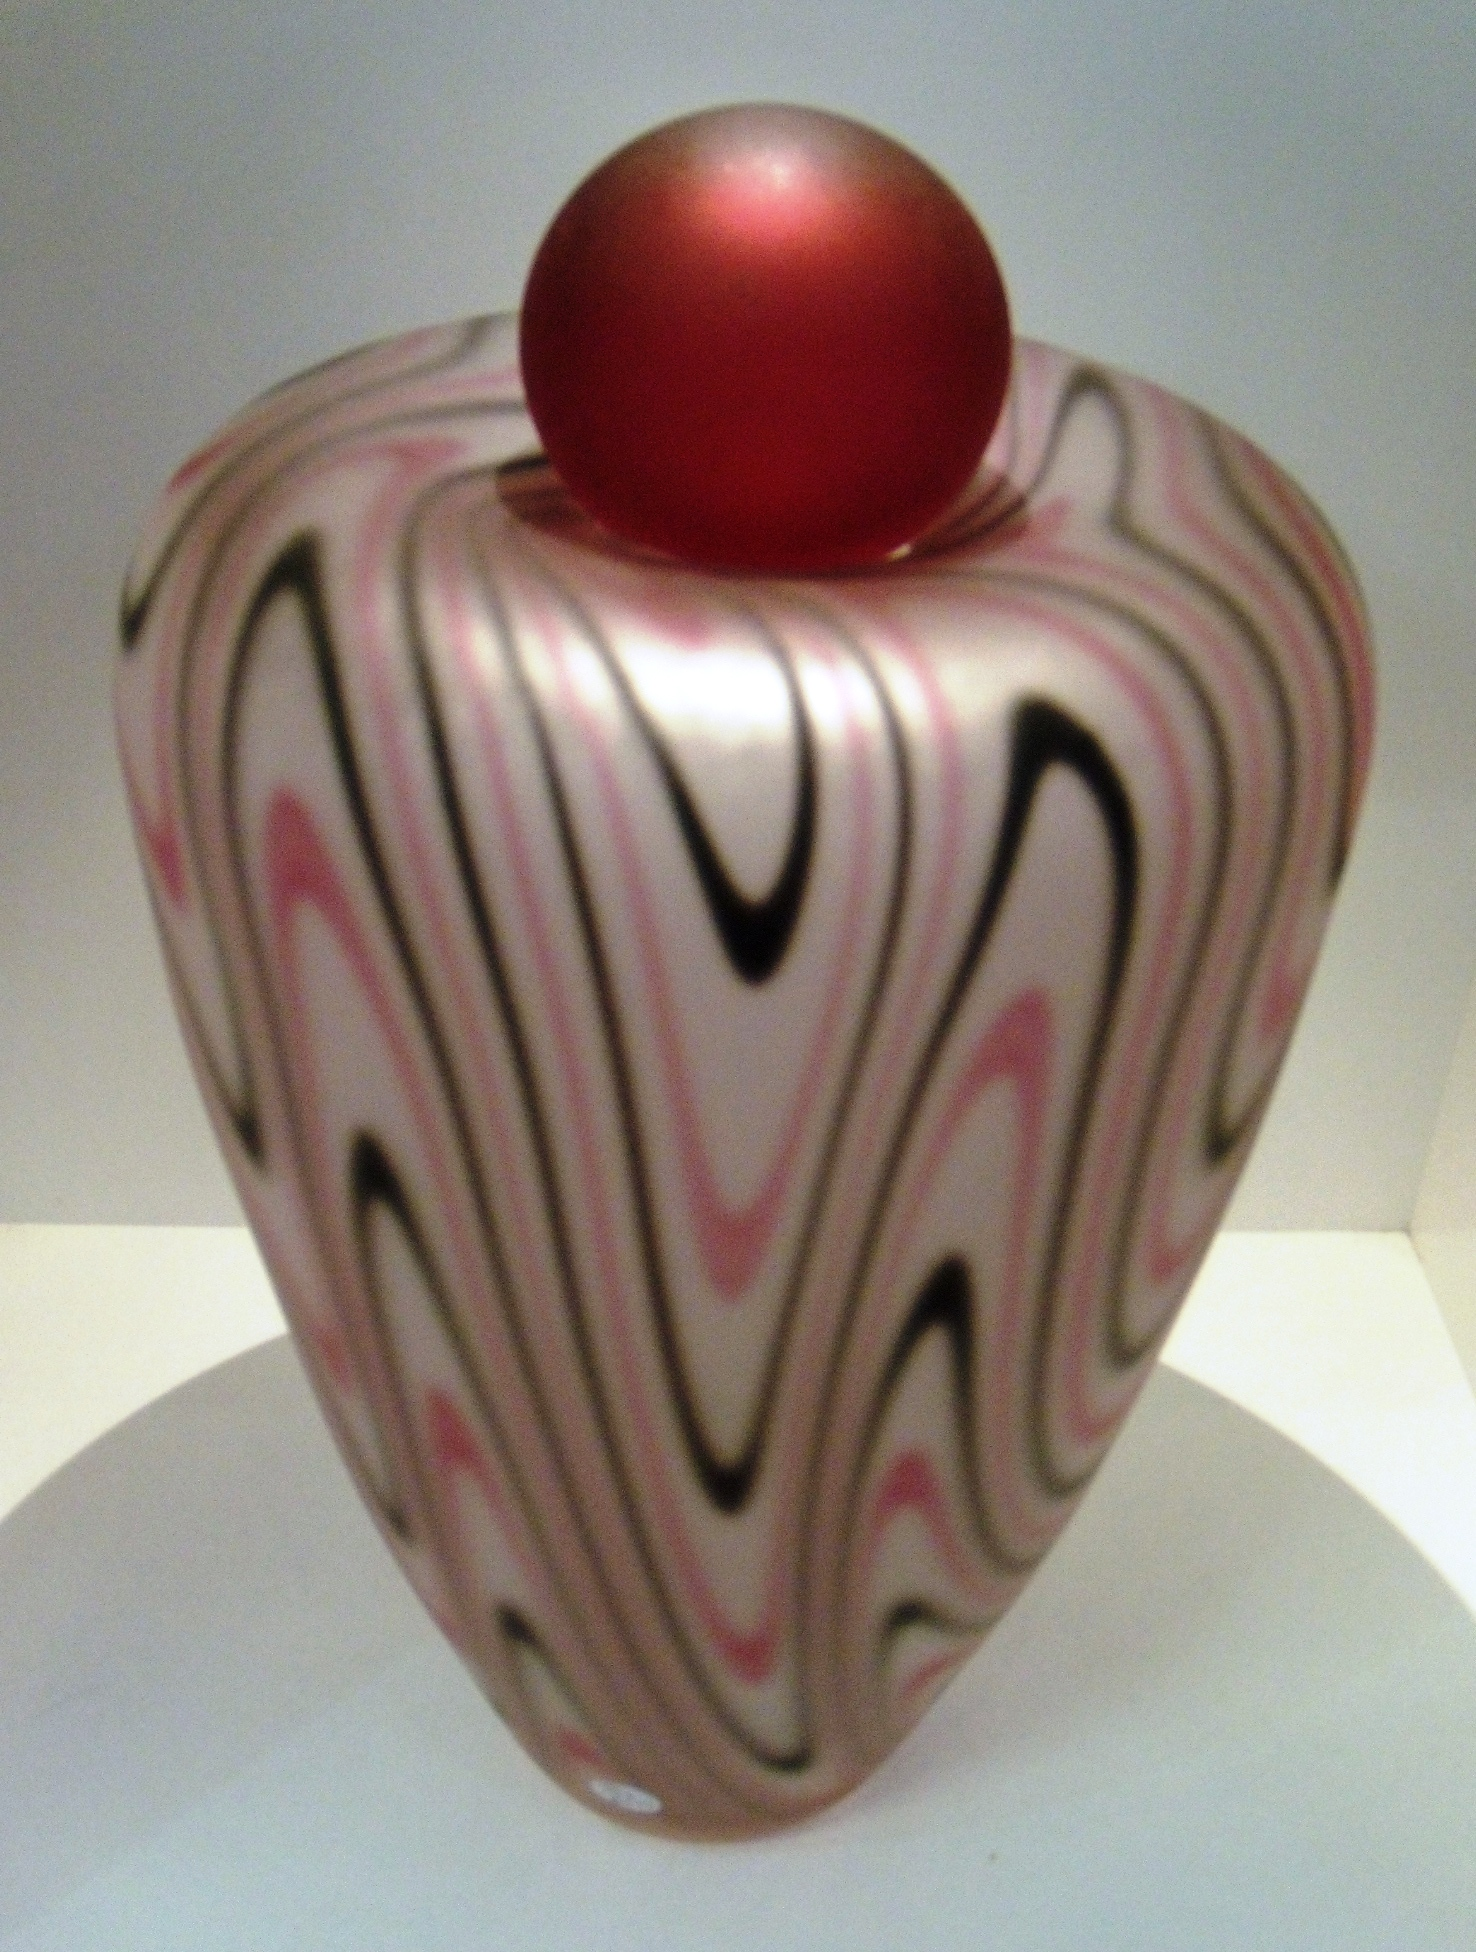 Ruby and Black Vase with Ruby ball $475 Frosted Measures 180mm w x 300mm h